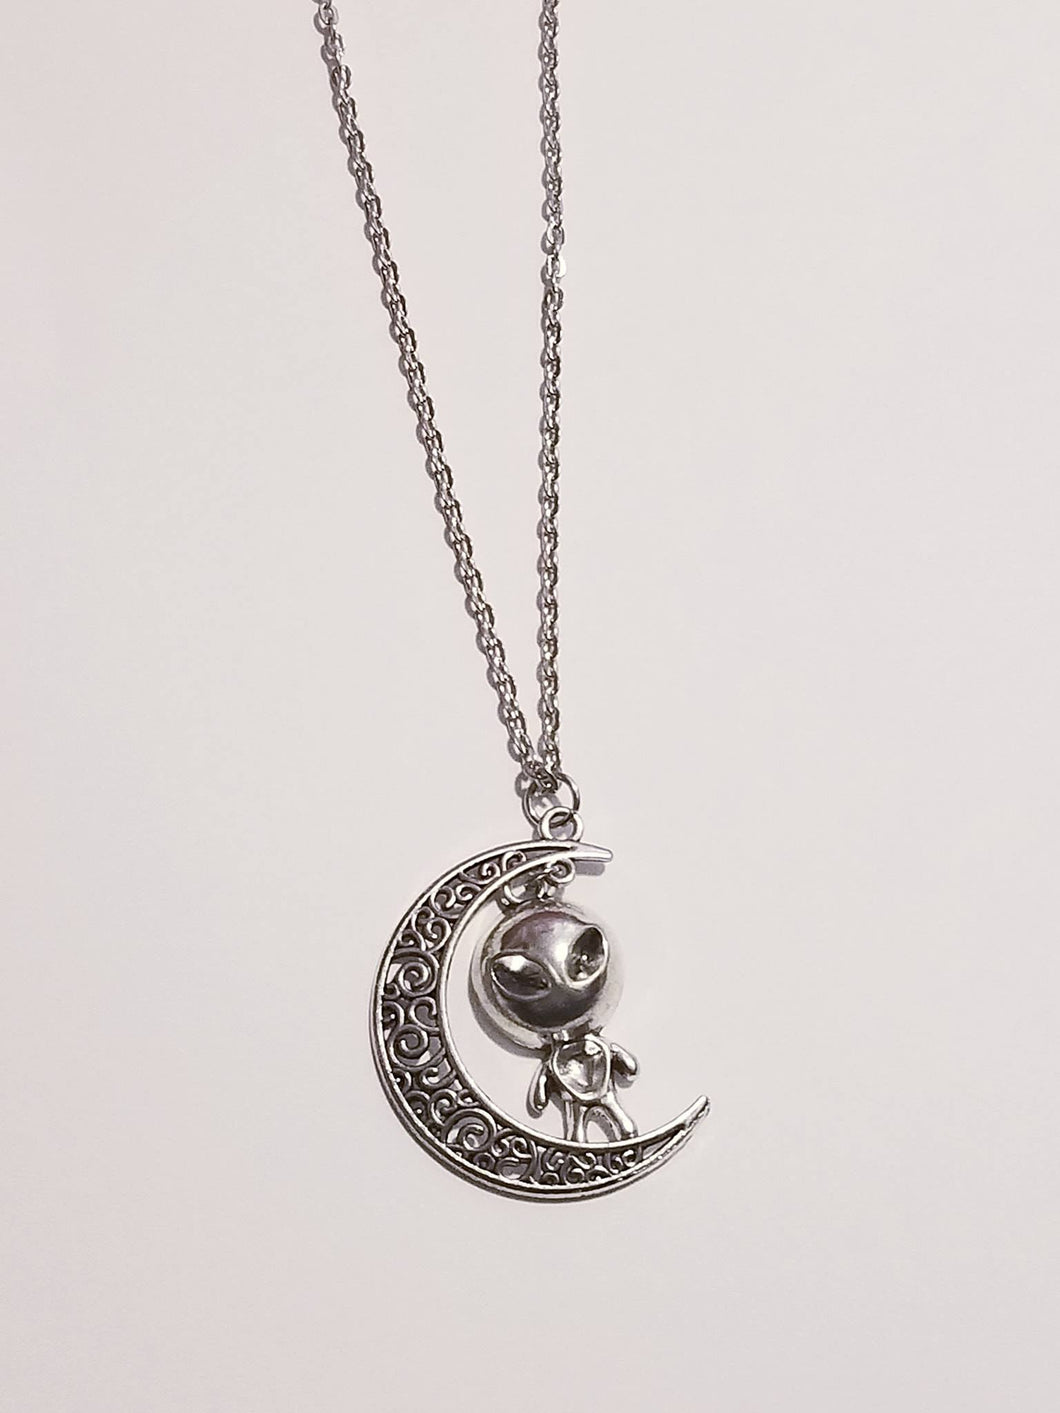 Alien Hanging by the Moon Necklace